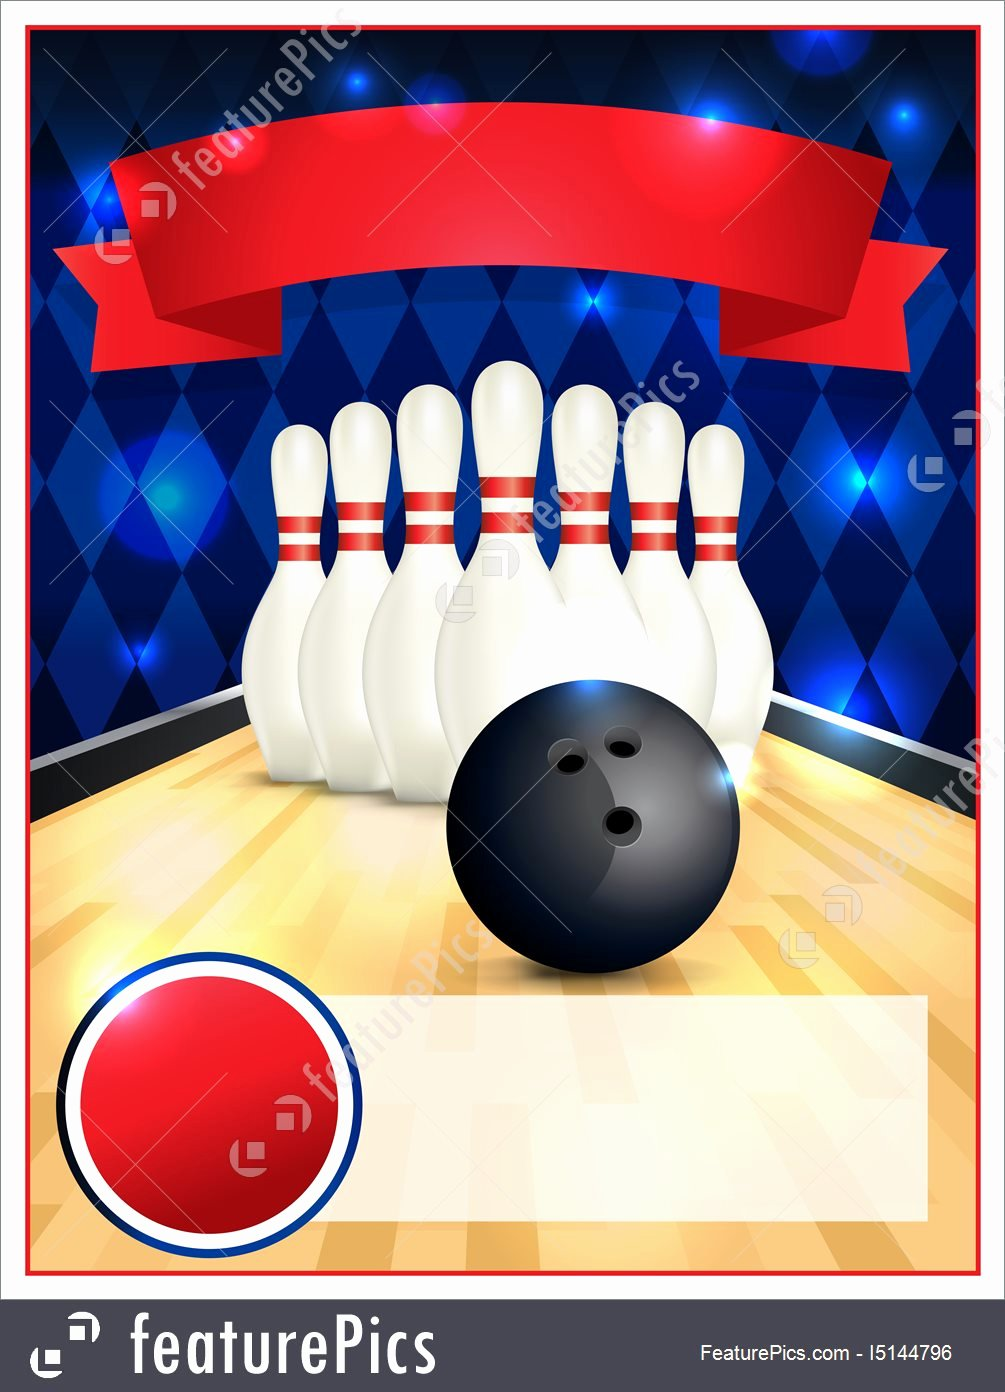 Bowling Flyer Template Free Fresh Blank Bowling Flyer Template Illustration